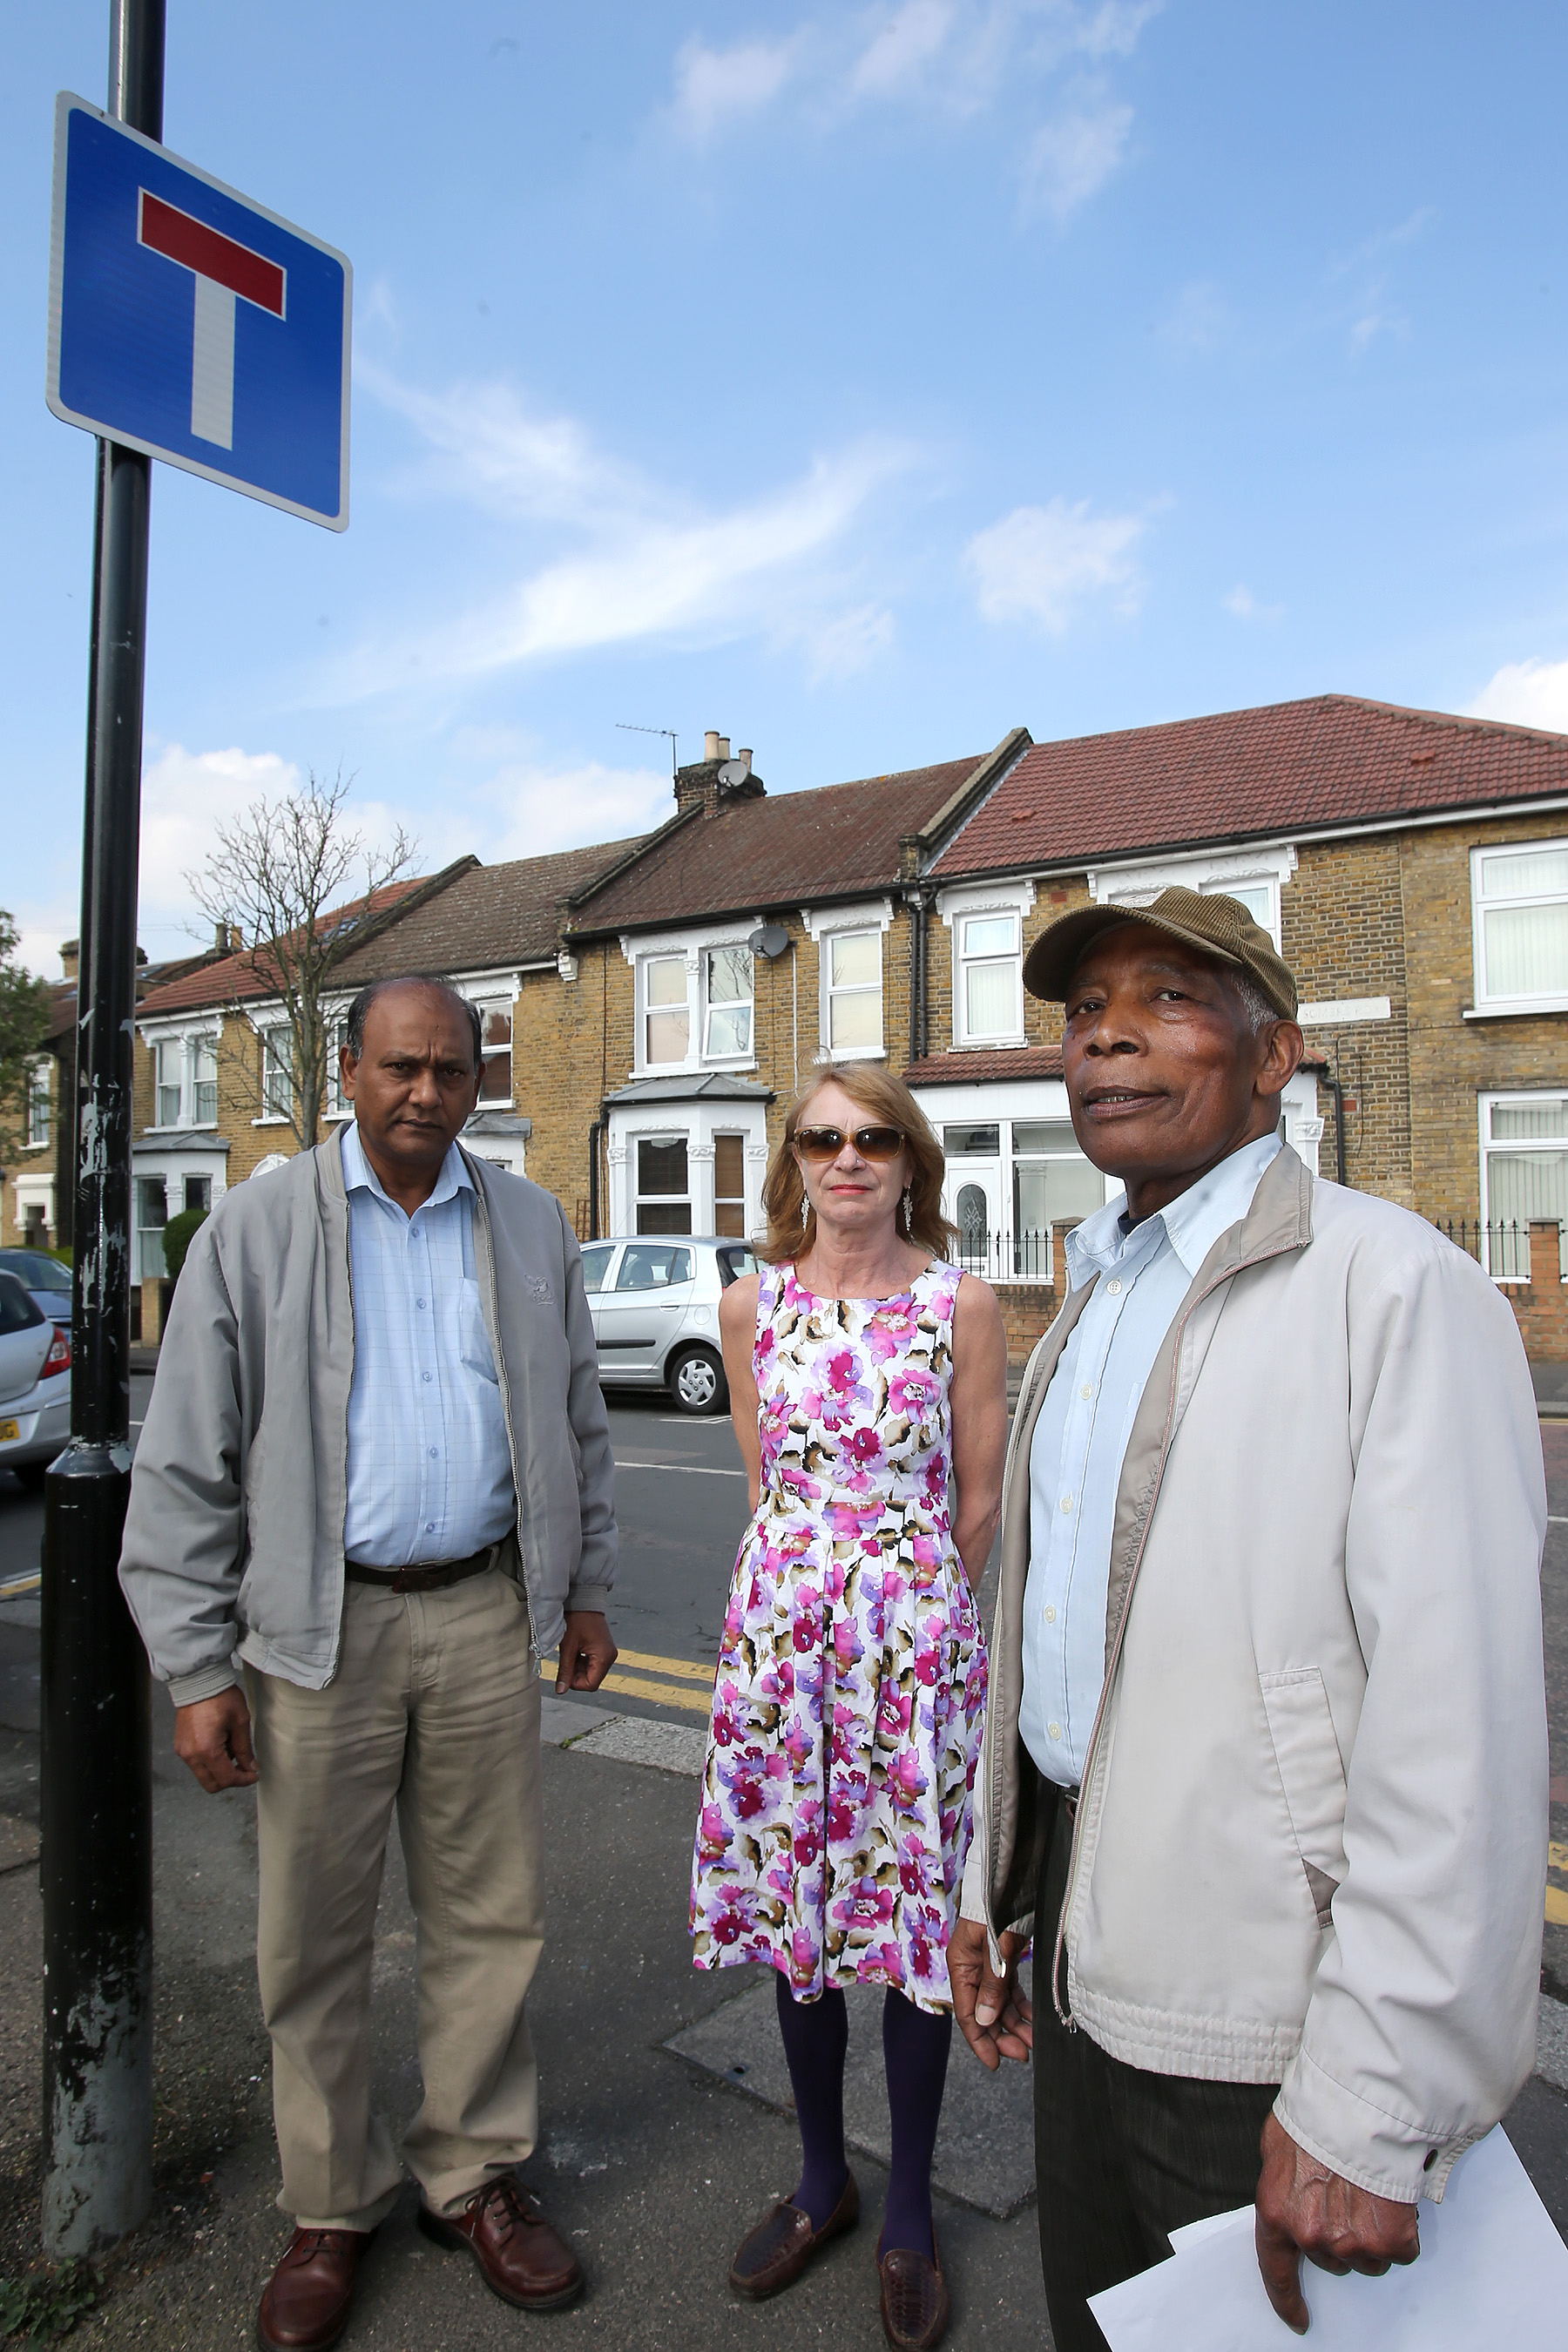 Somers Road residents Veejay Sanoo, Chrissy Ansell and Norman Blackwood are campaigning for better 'no through road' signs. This is the only sign currently indicating that the street is a dead-end.